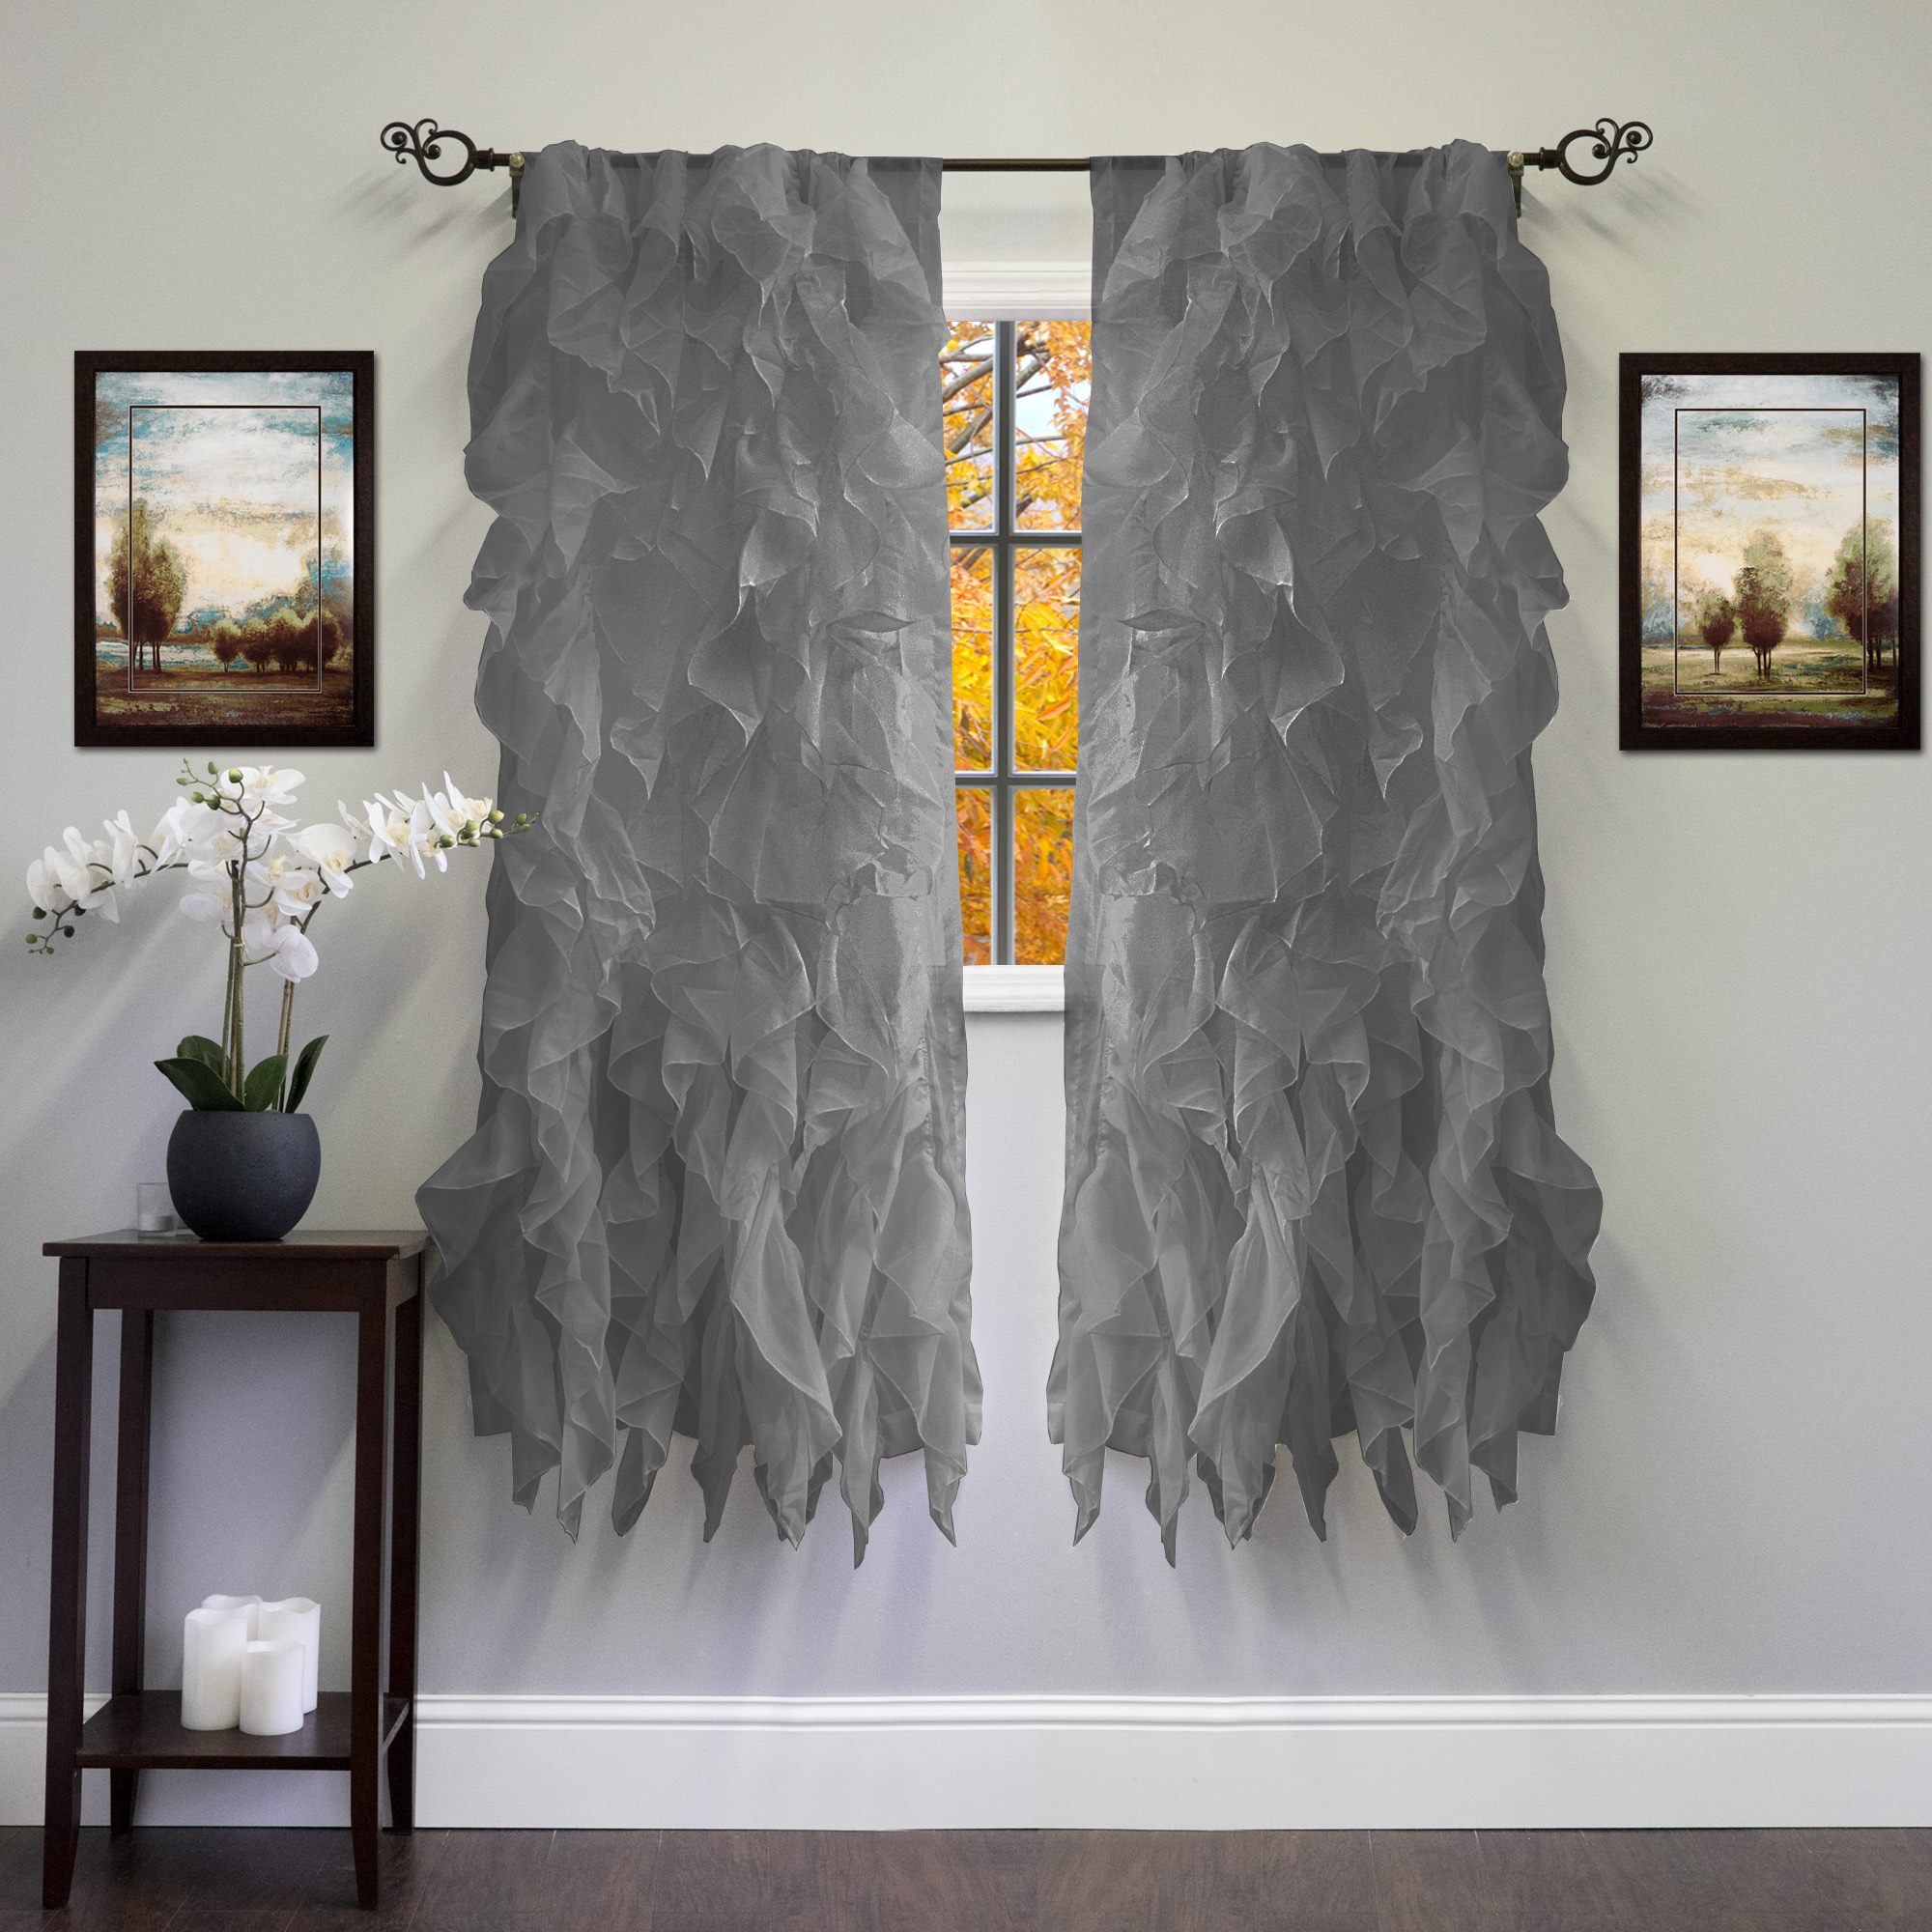 "Chic Sheer Voile Vertical Ruffled Tier Window Curtain Panel 50"" X 63"" – Walmart With Sheer Voile Ruffled Tier Window Curtain Panels (View 5 of 20)"